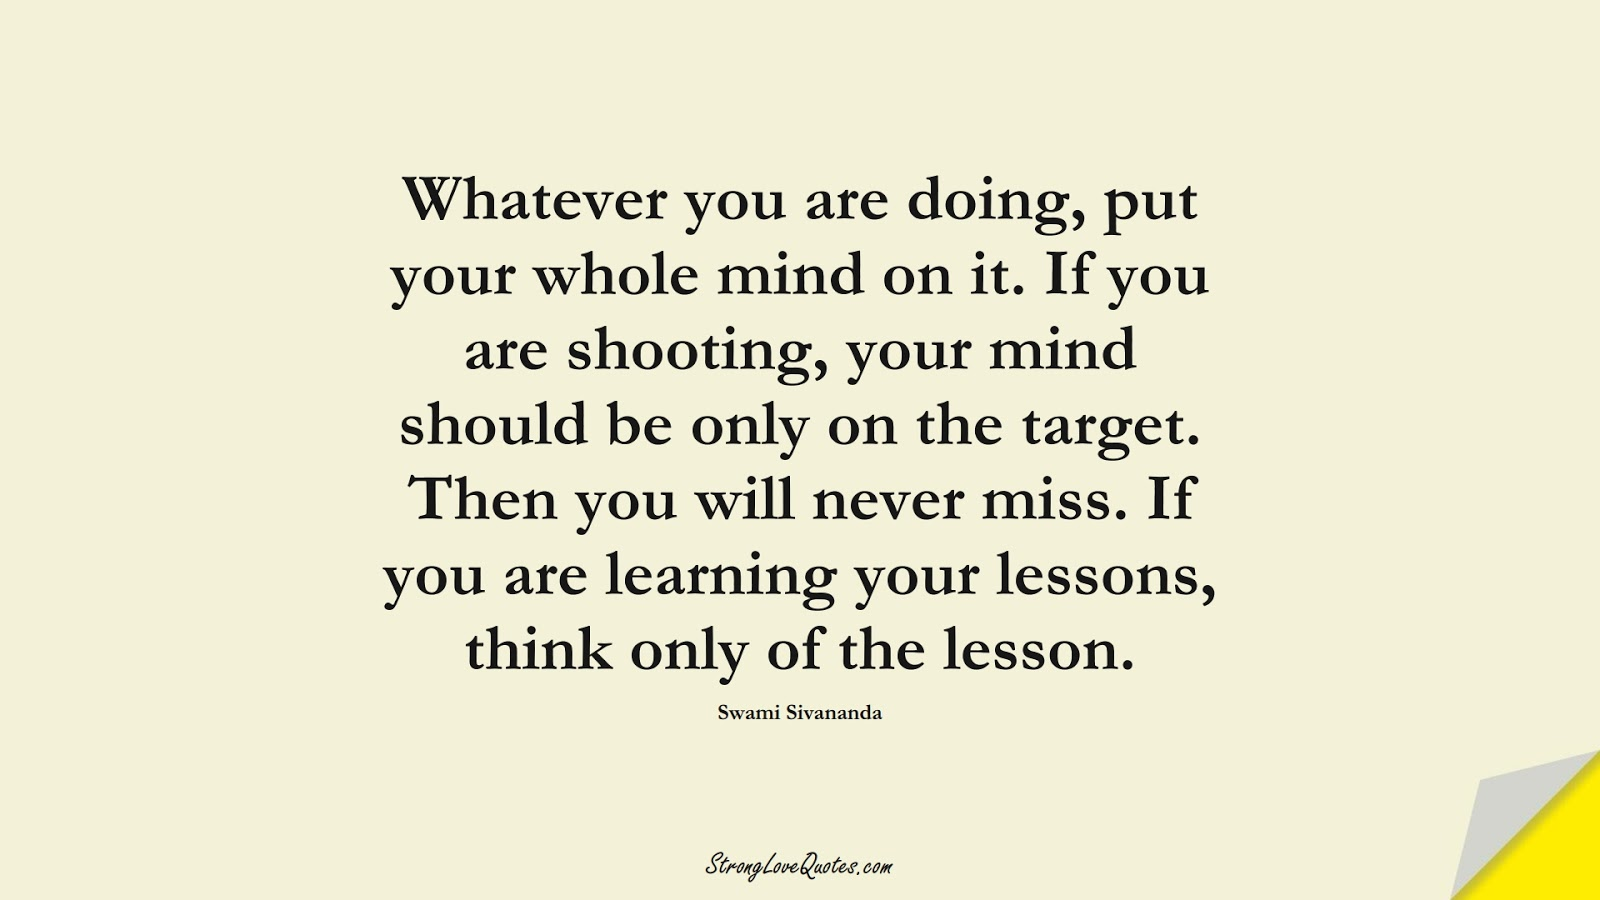 Whatever you are doing, put your whole mind on it. If you are shooting, your mind should be only on the target. Then you will never miss. If you are learning your lessons, think only of the lesson. (Swami Sivananda);  #EducationQuotes